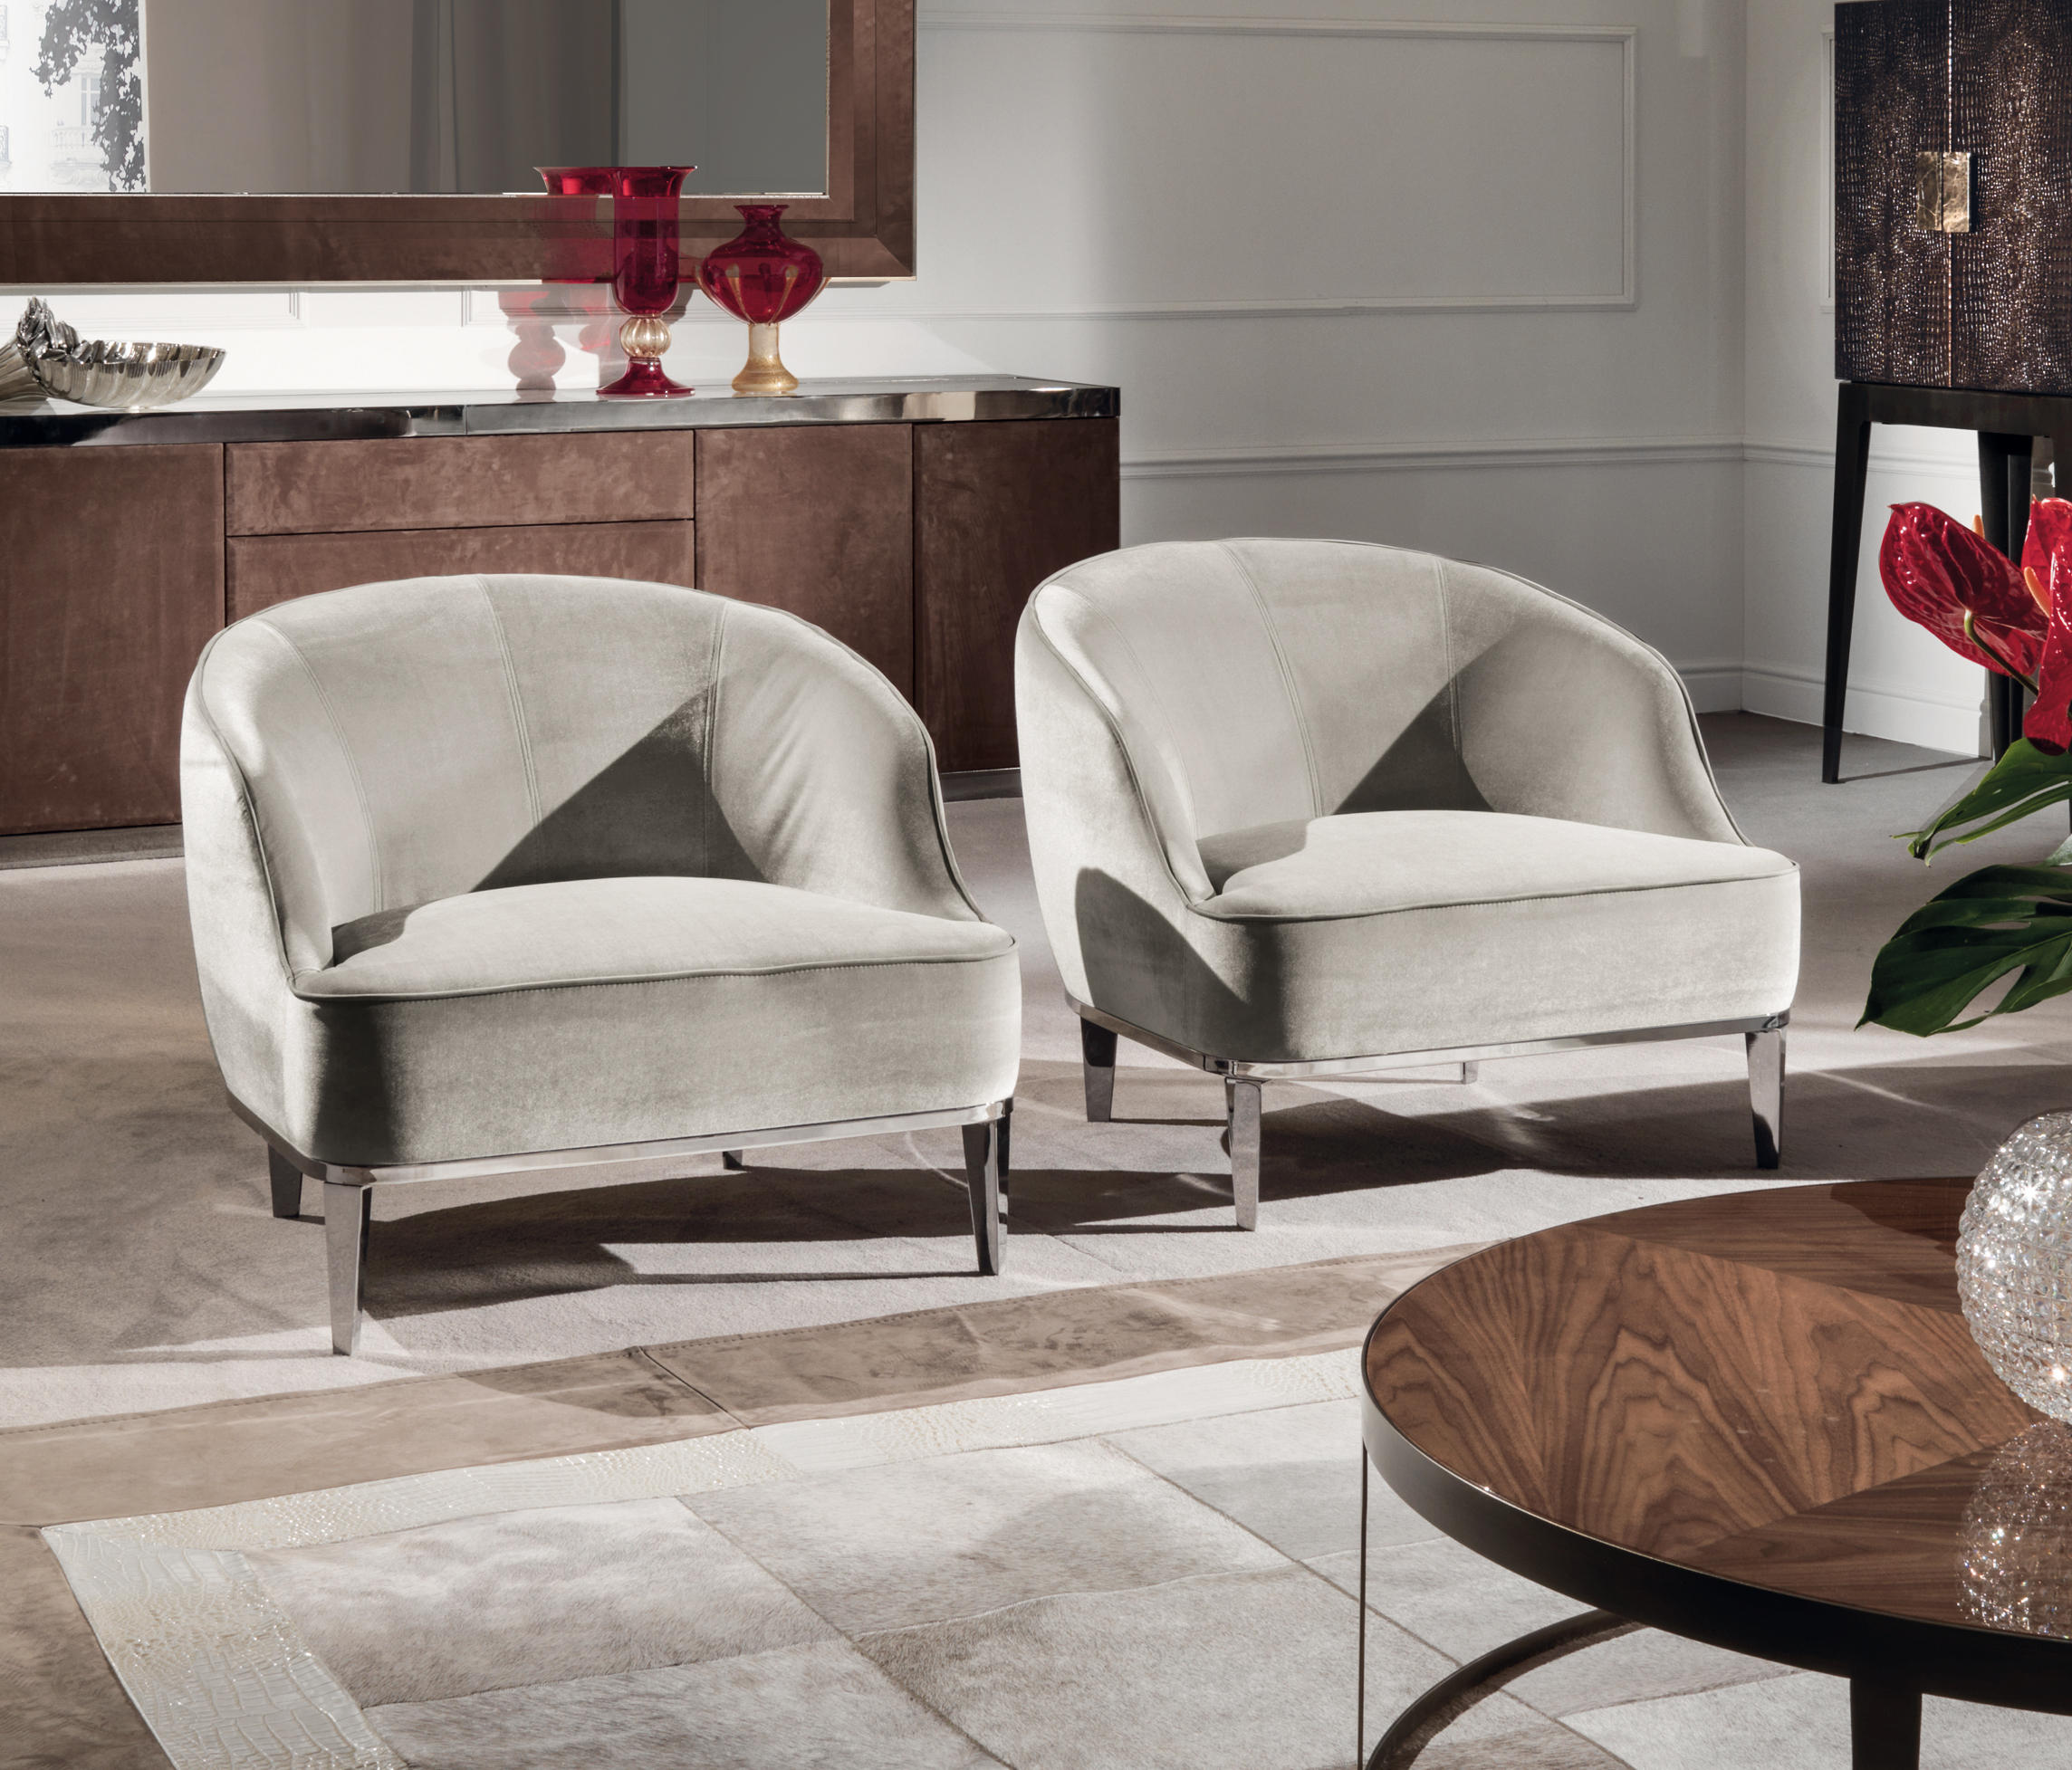 beth armchairs from longhi s p a architonic